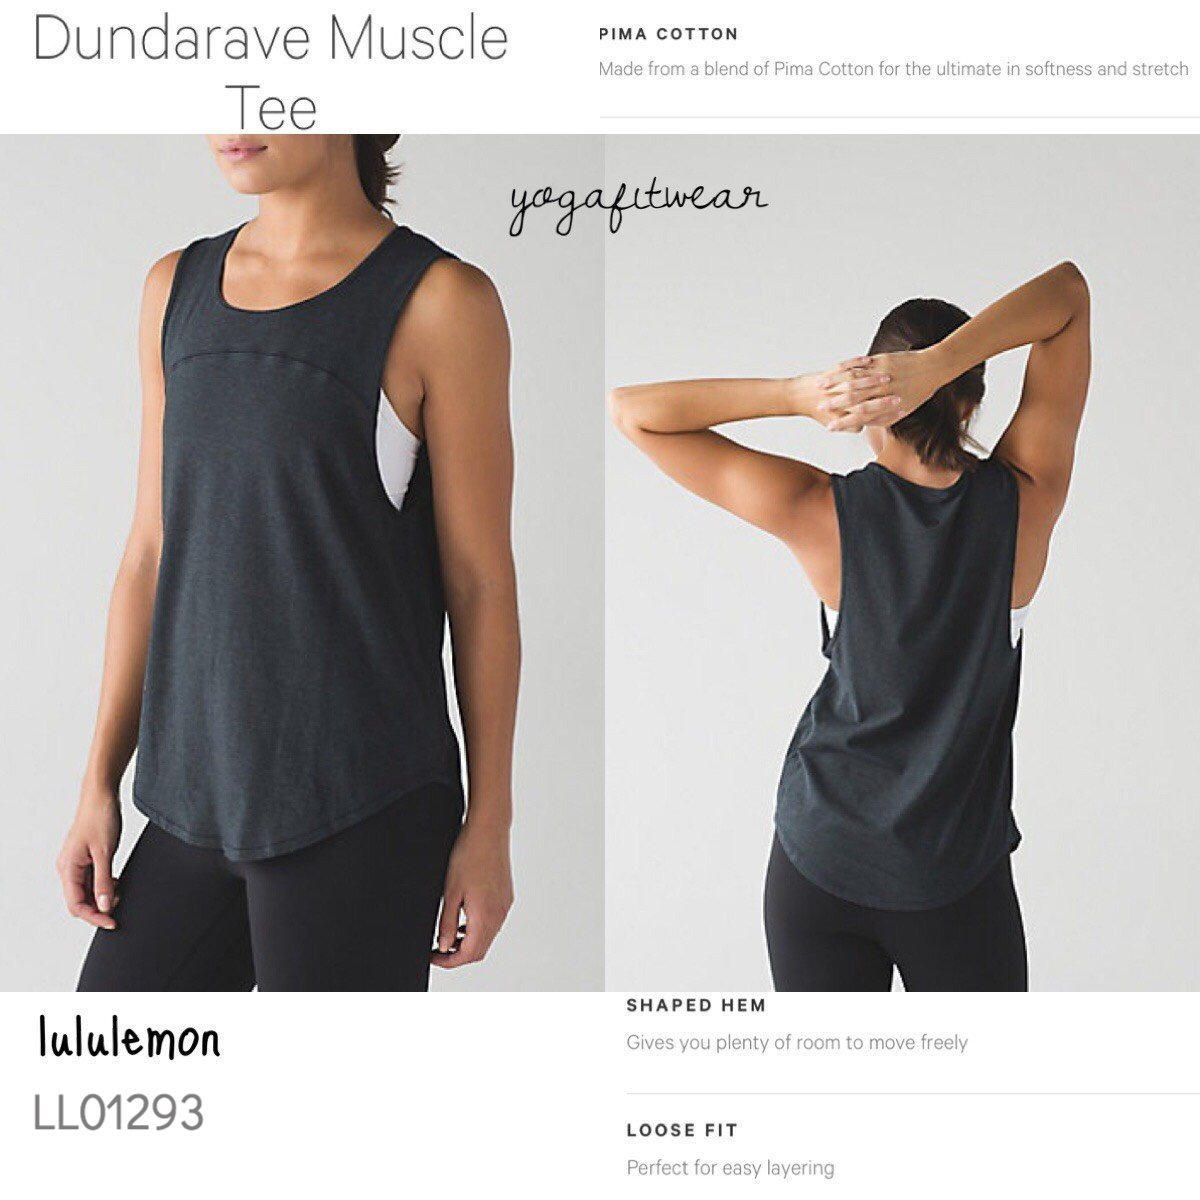 Lululemon - Dundarave Mascle Tee (Heathered Black) (LL01293)